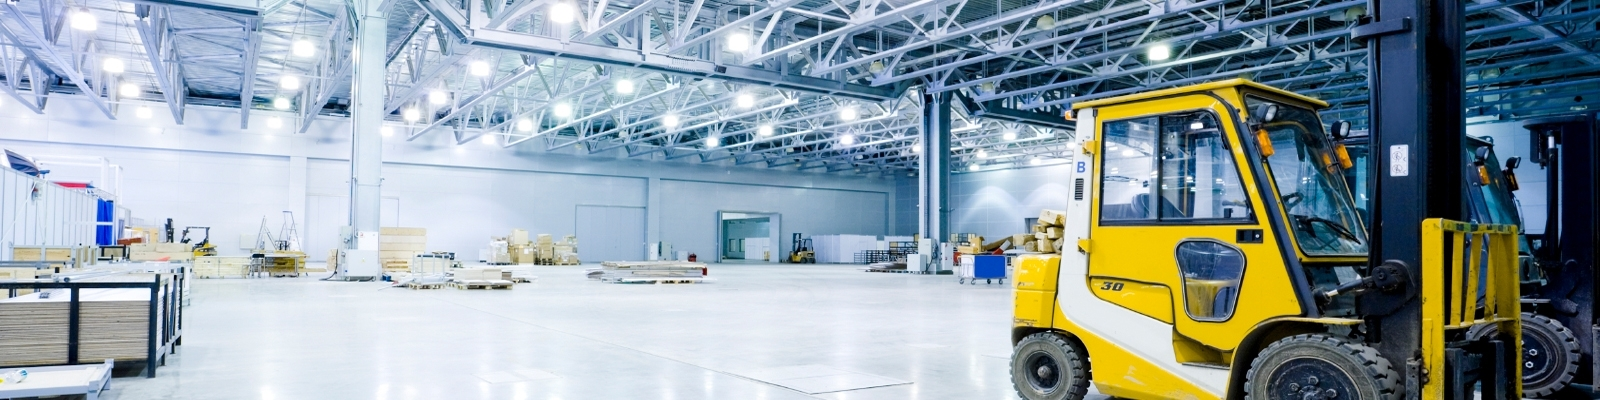 Cireon-highbay-warehouse-LED-Lighting